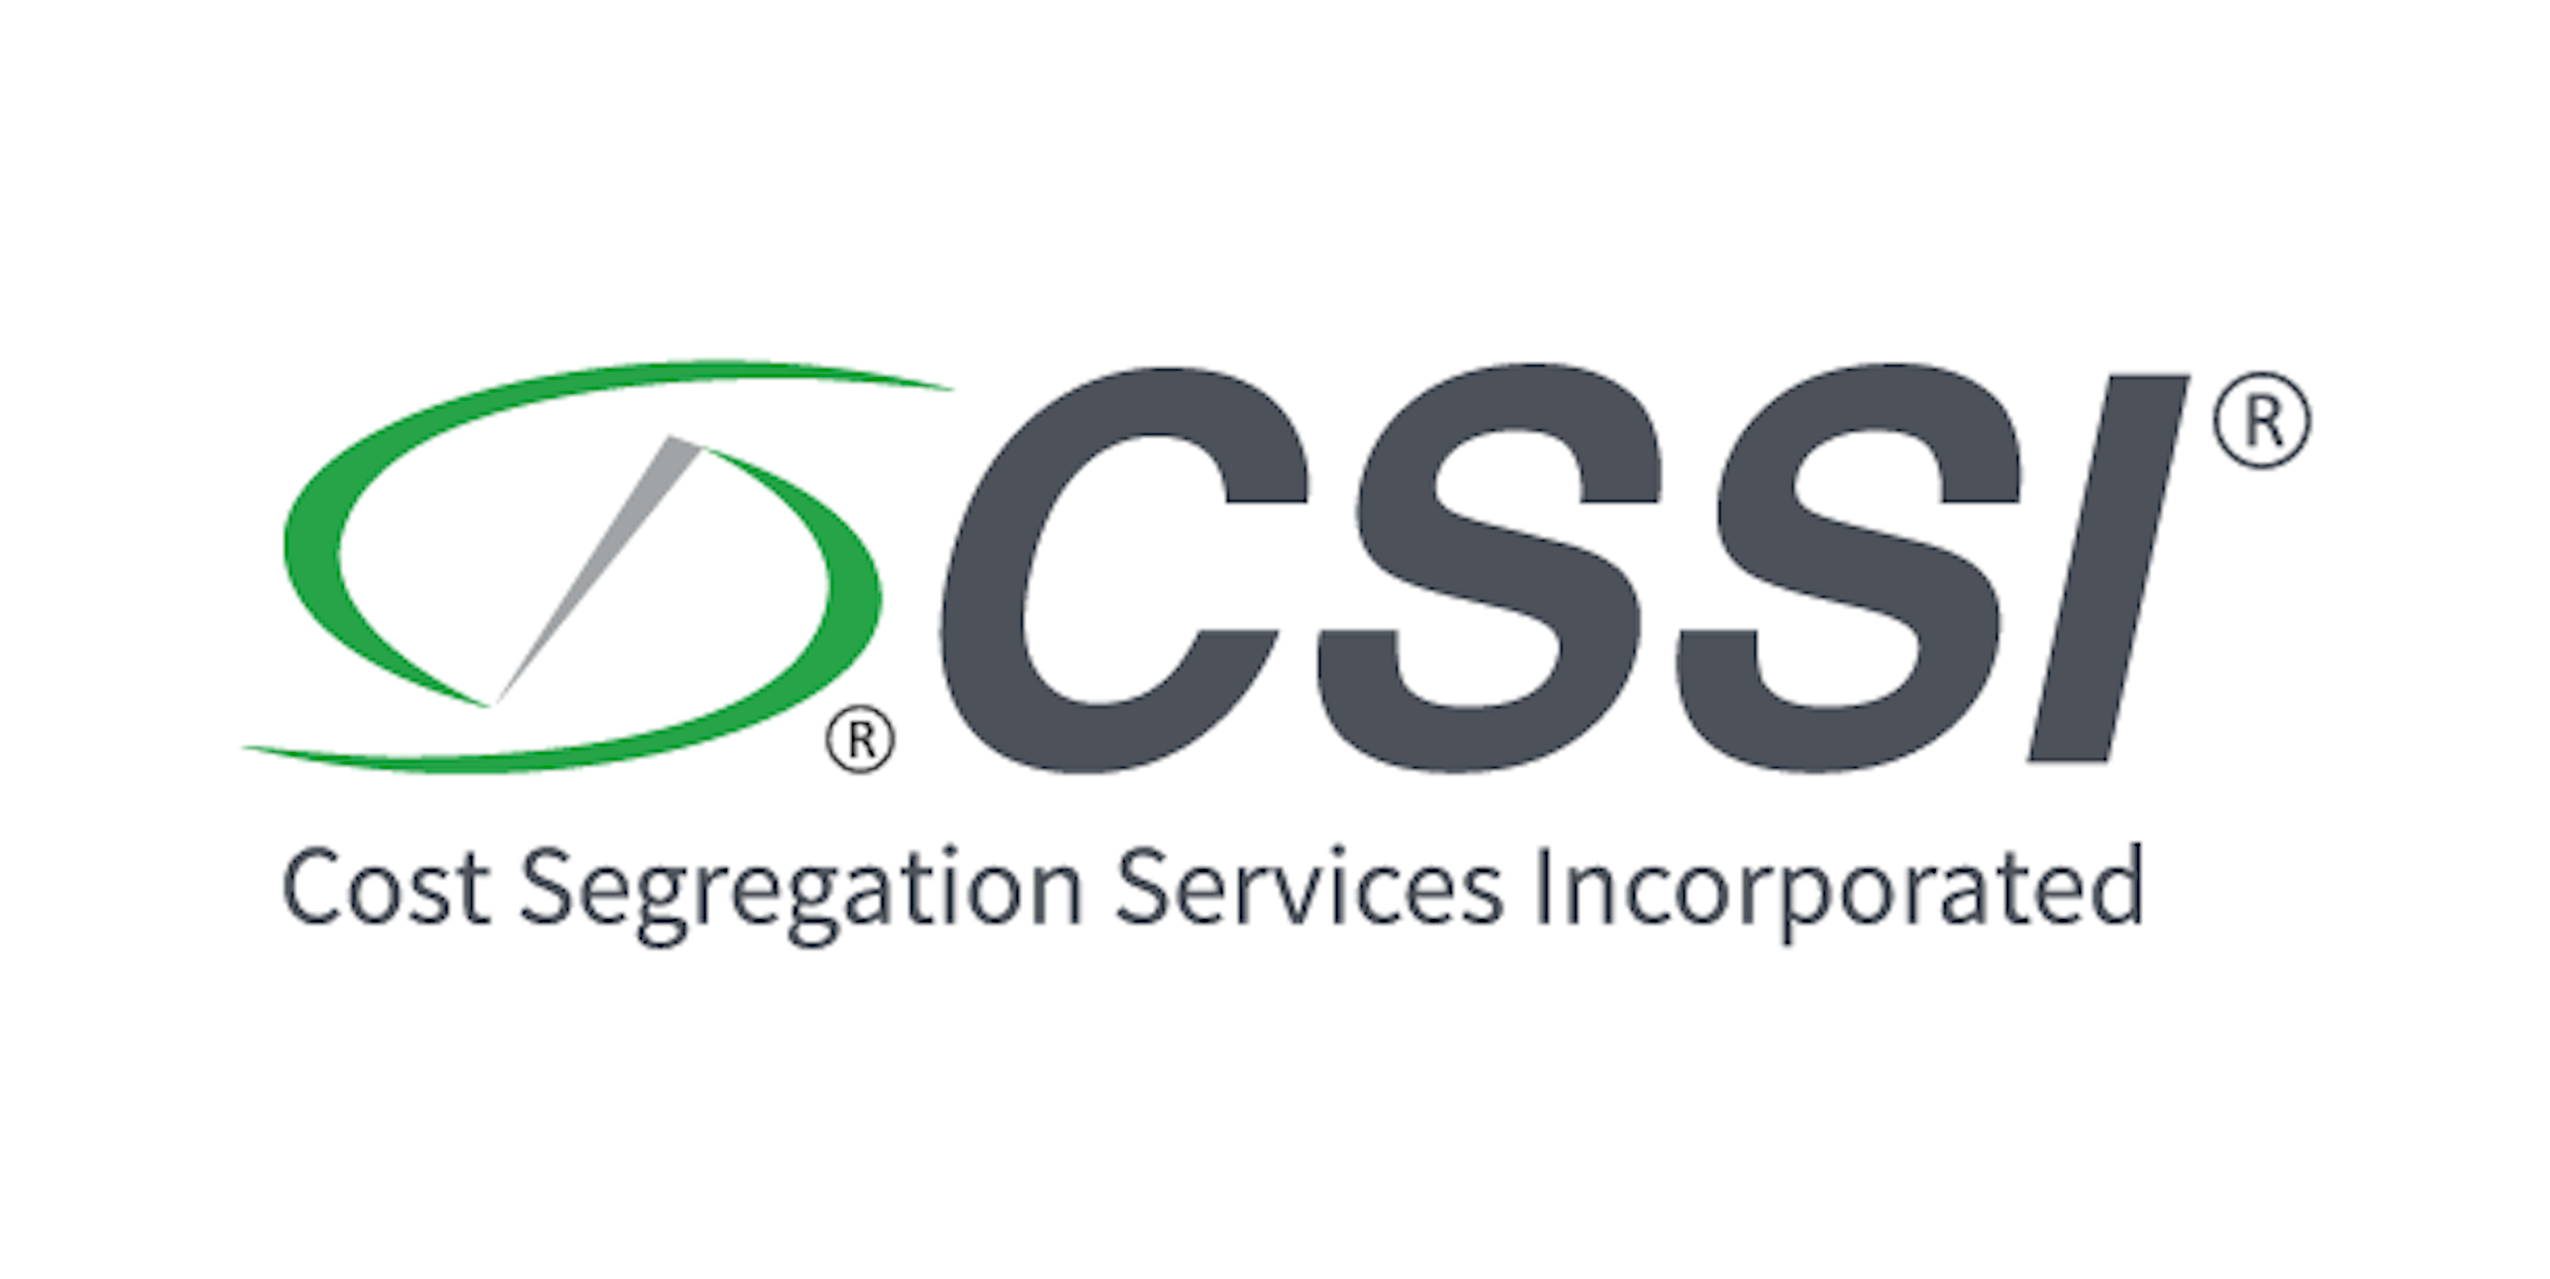 COST SEGREGATION SERVICES, INC.